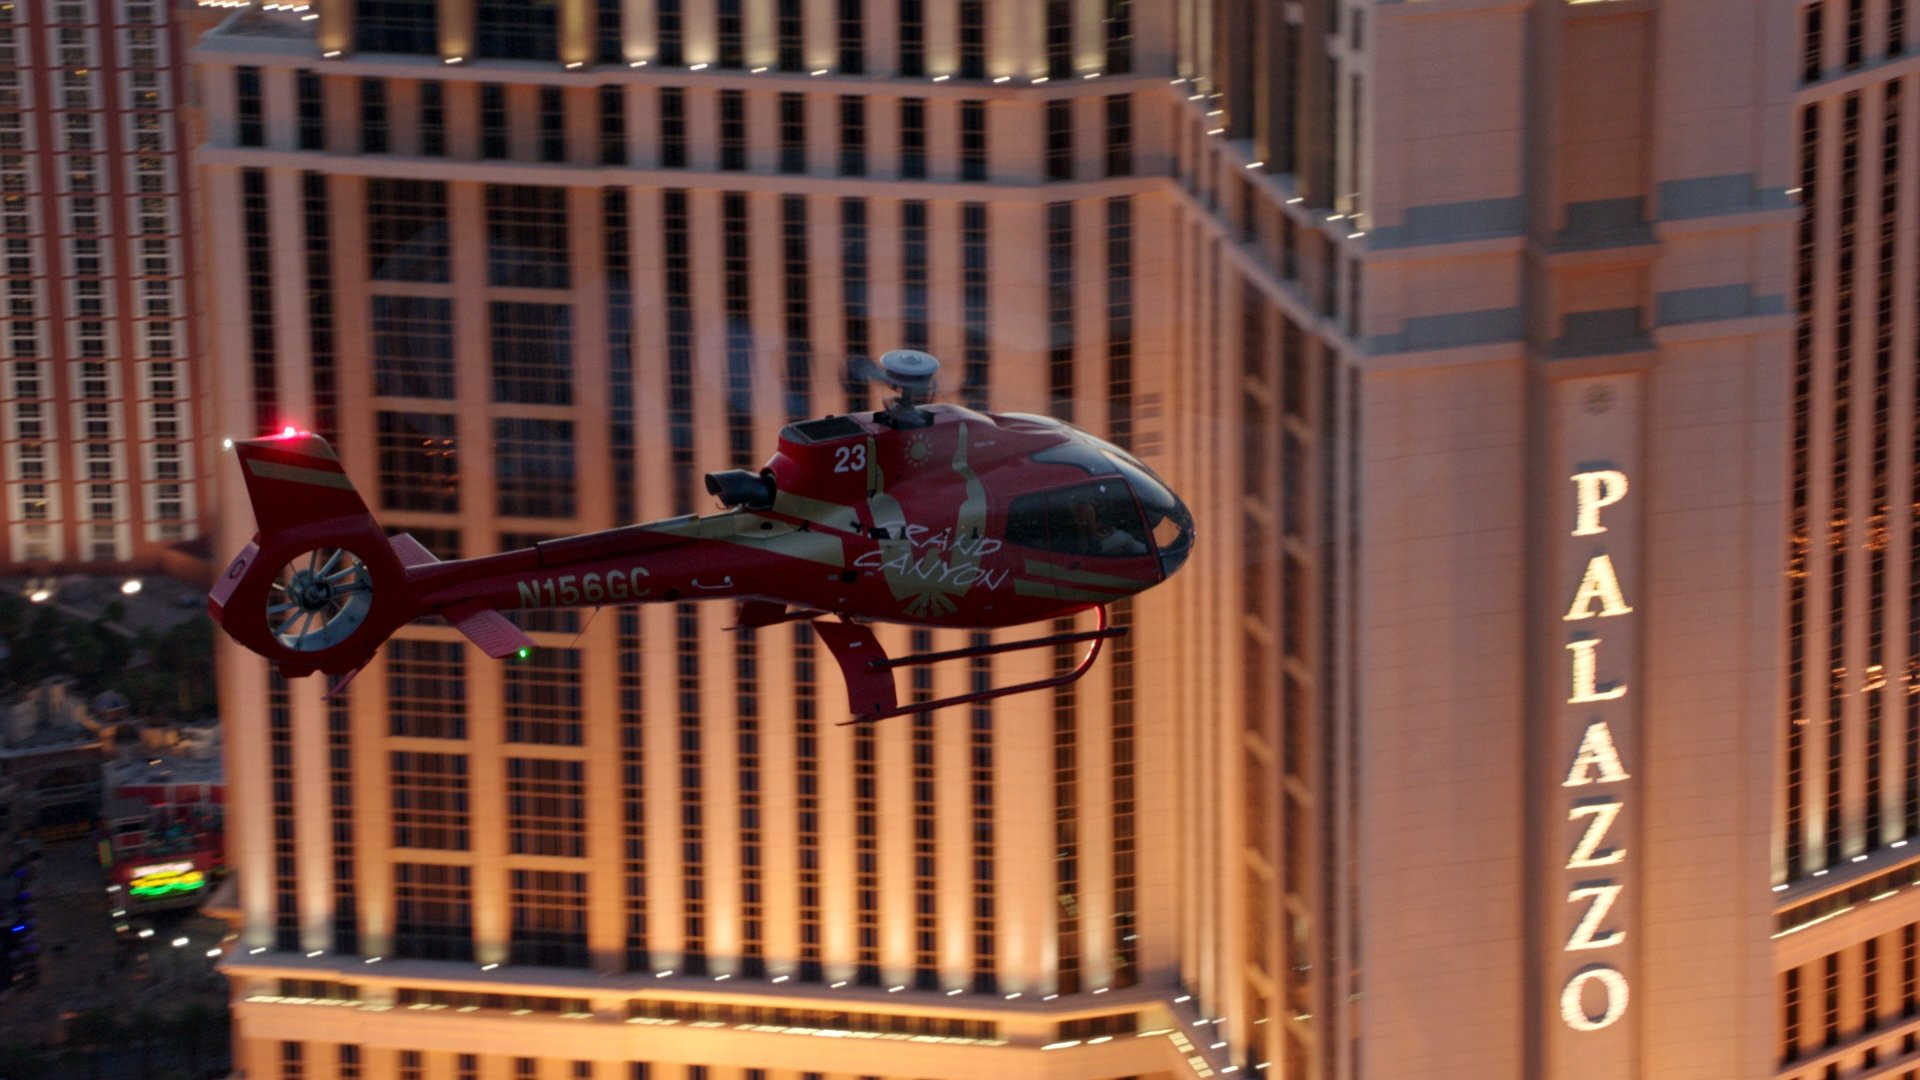 EC-130 helicopter flying over the strip with the Palazzo hotel in the background